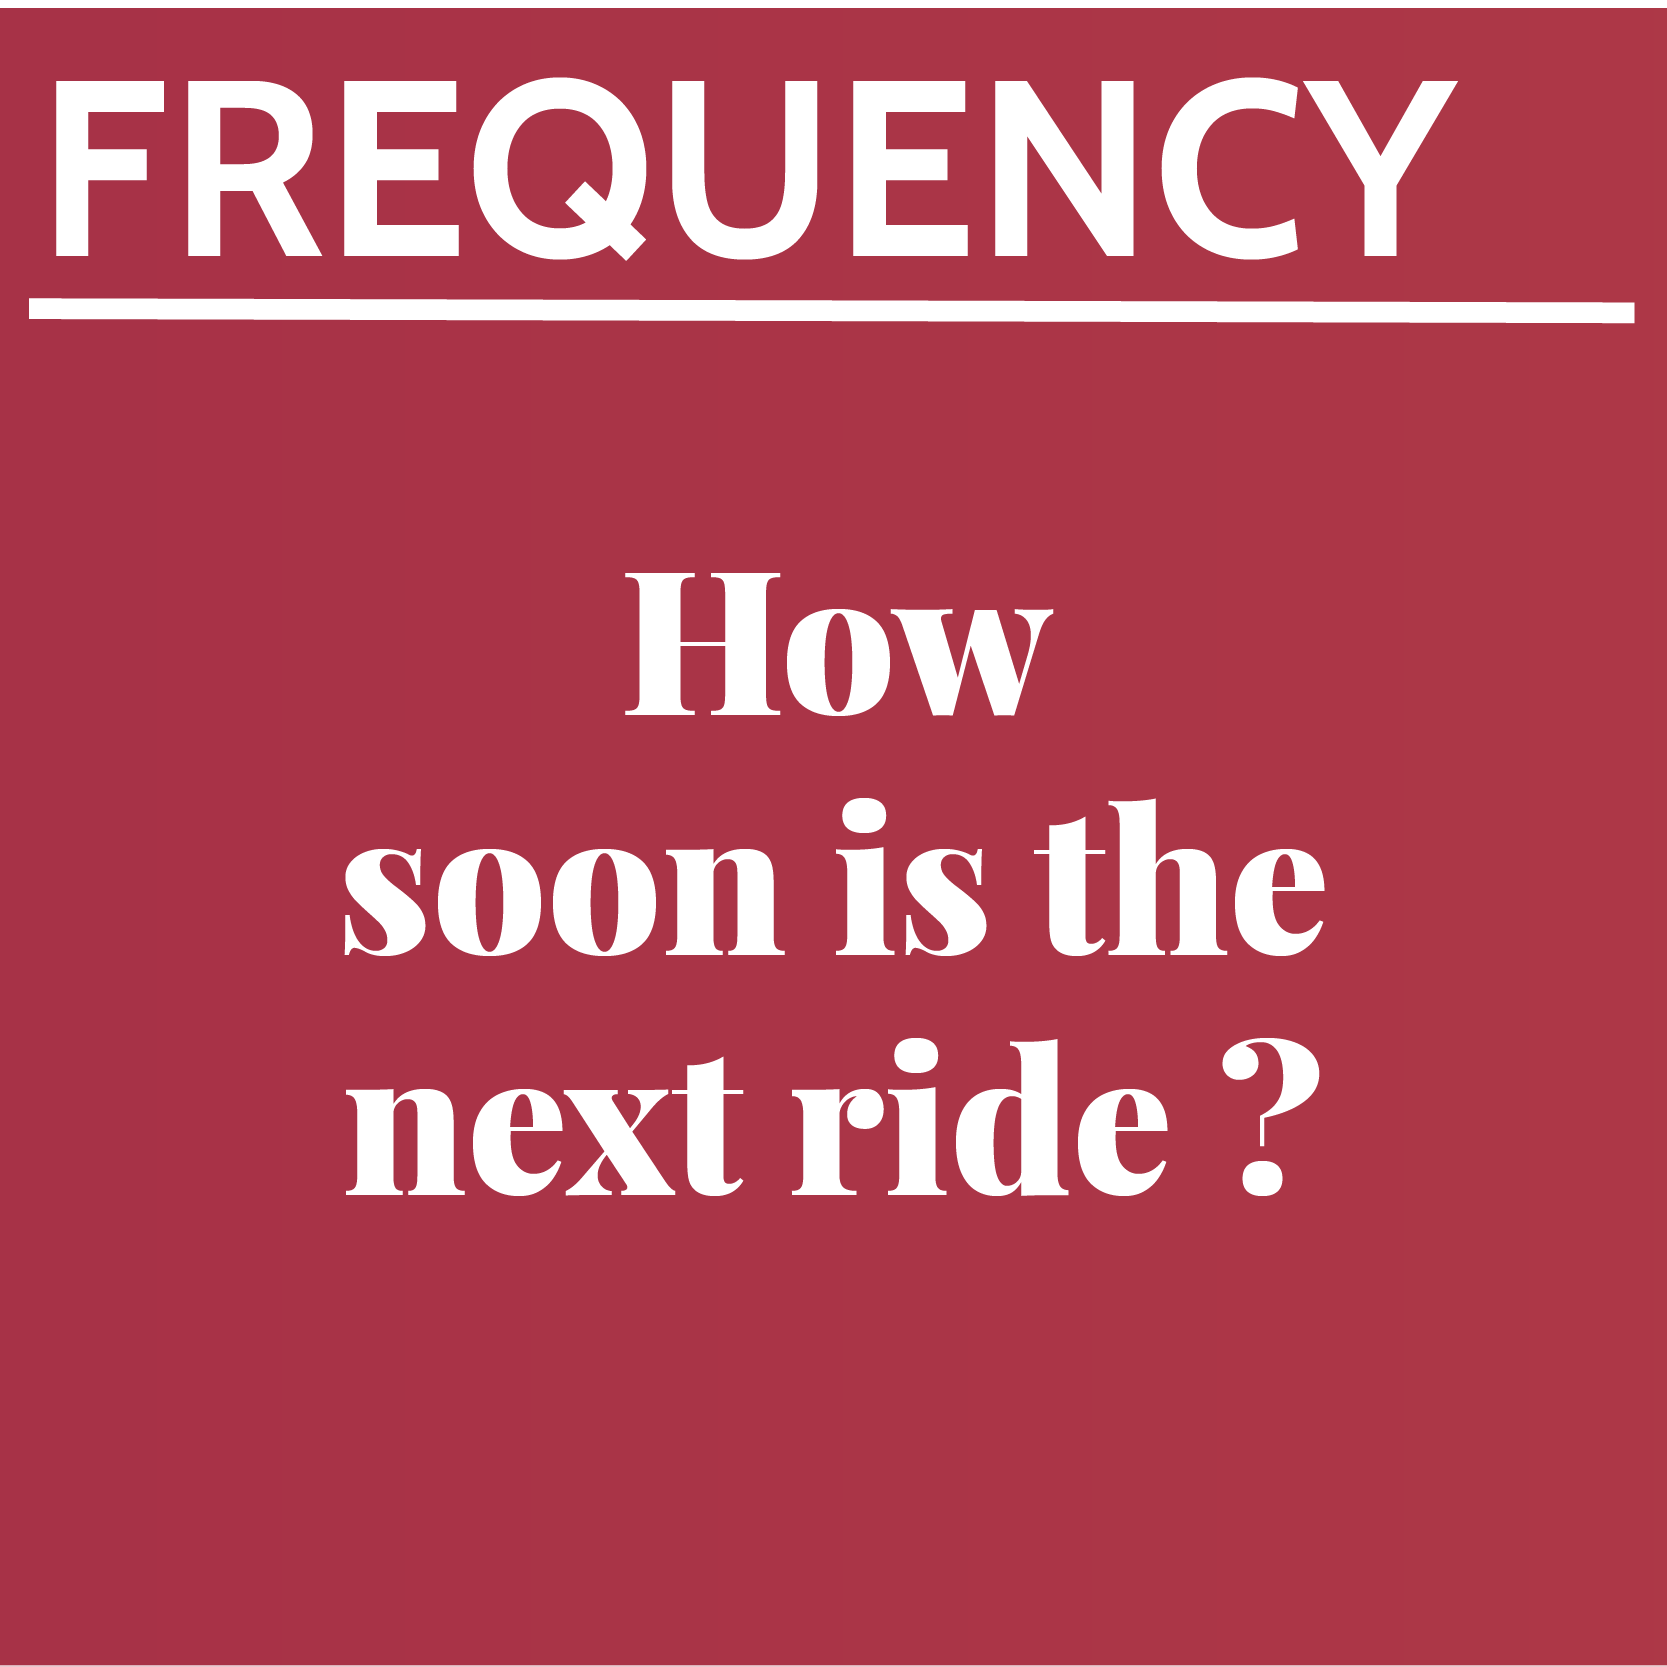 NEW FREQUENCY SQUARE-01.png